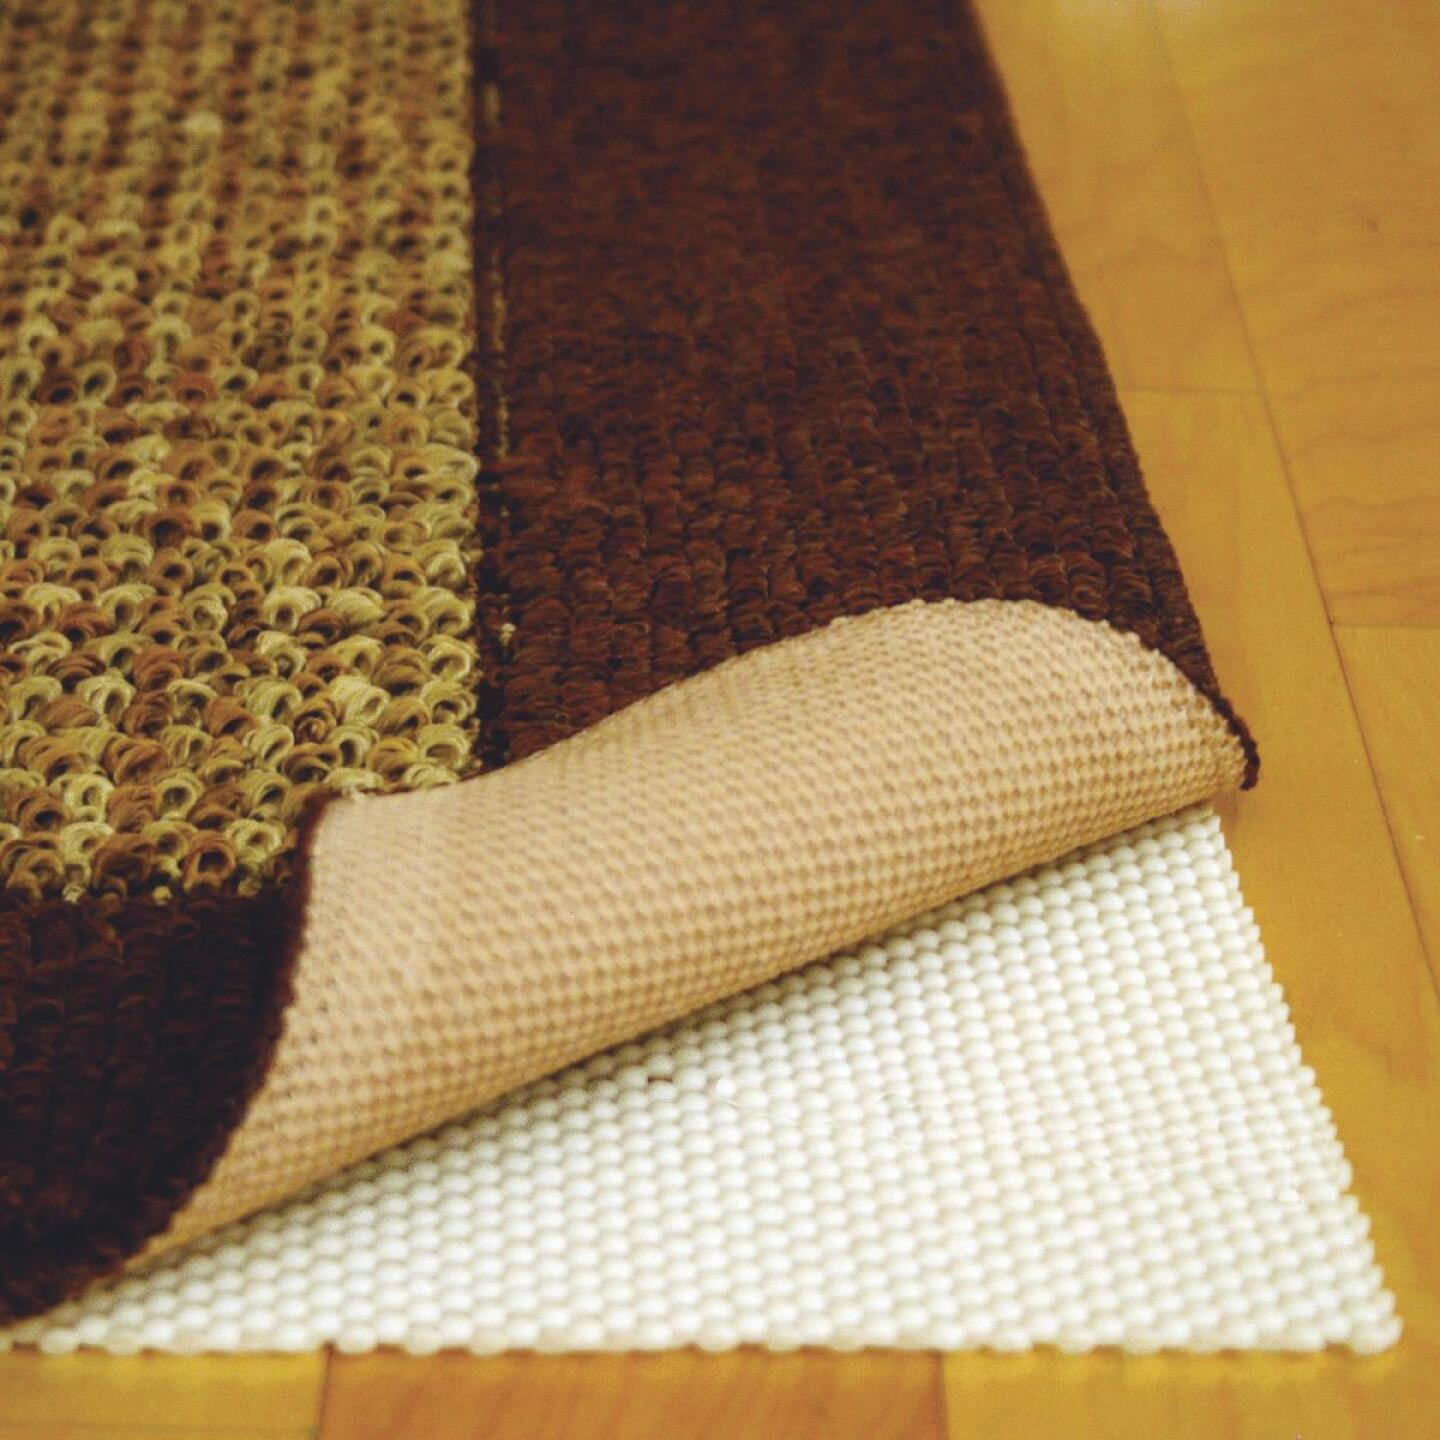 Mohawk Home 4 Ft. 8 In. x 7 Ft. 6 In. Better Quality Nonslip Rug Pad Image 1